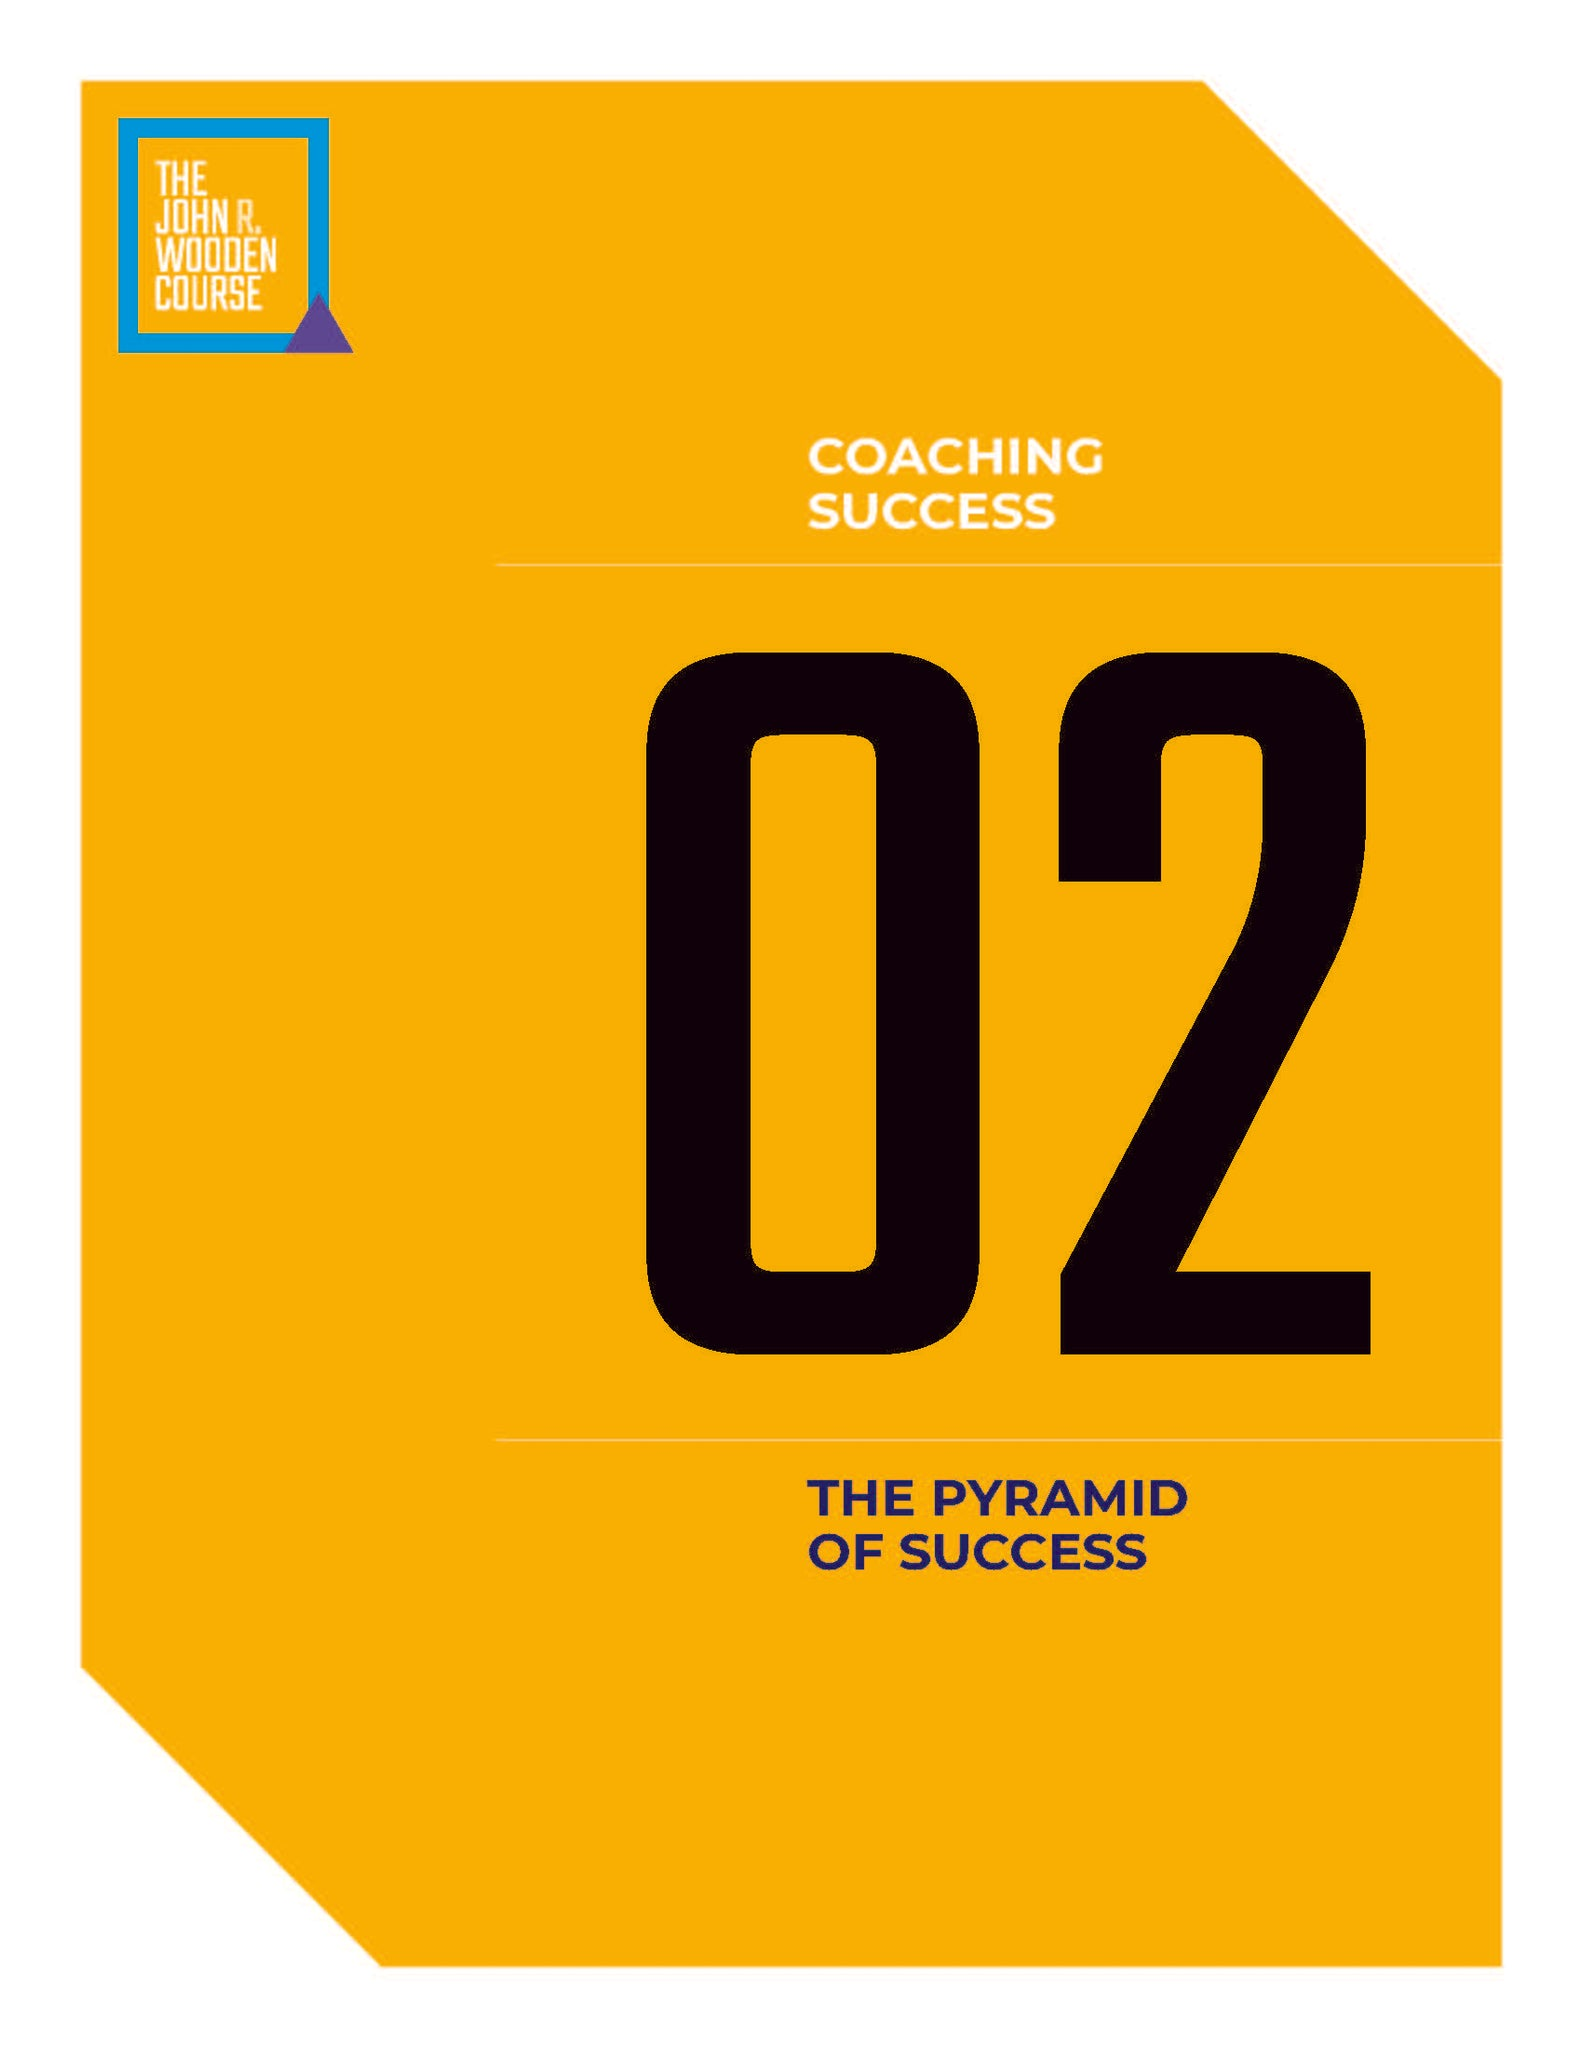 John Wooden's Coaching Course - The Pyramid of Success